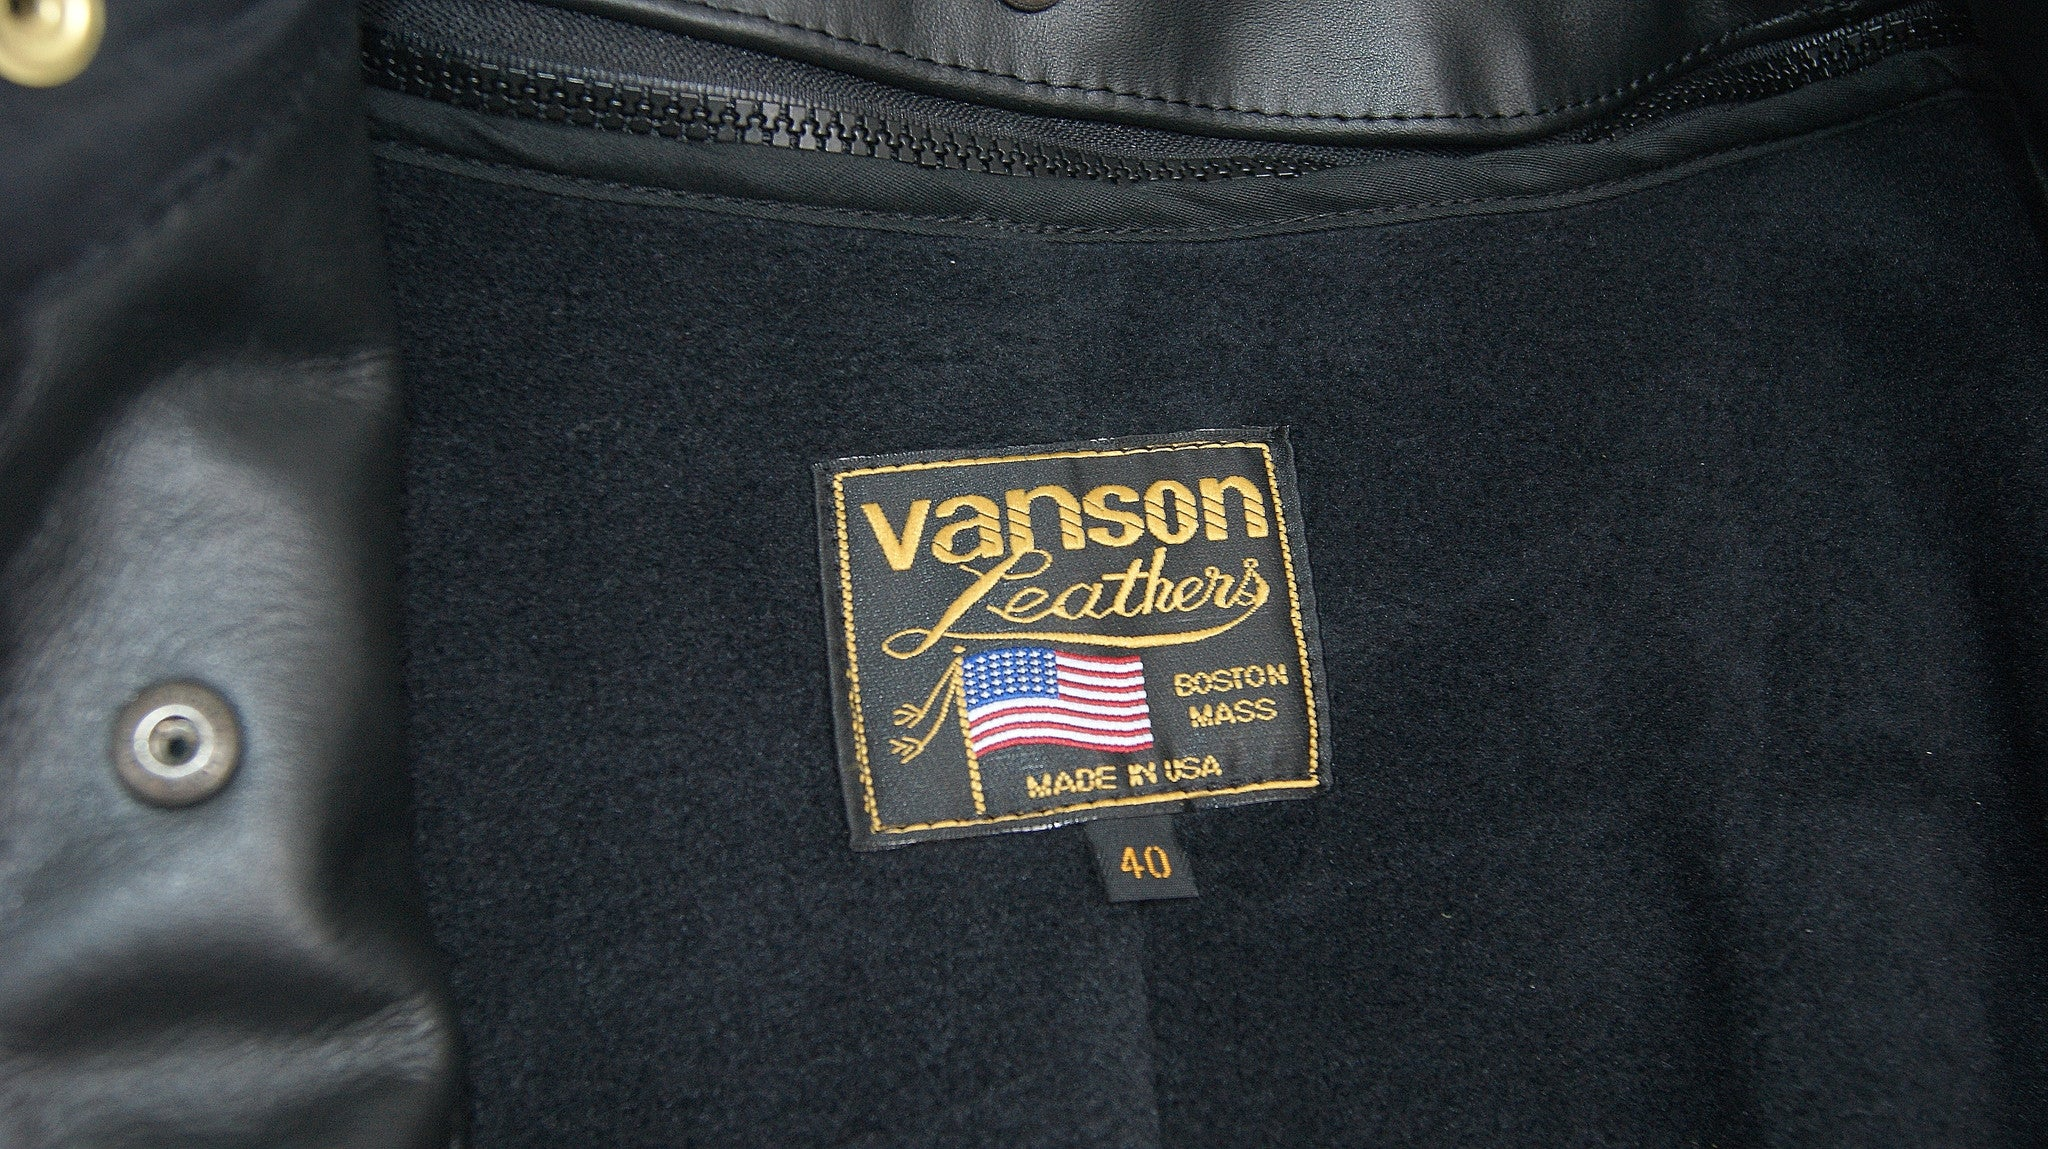 Vanson House Jacket, size 40